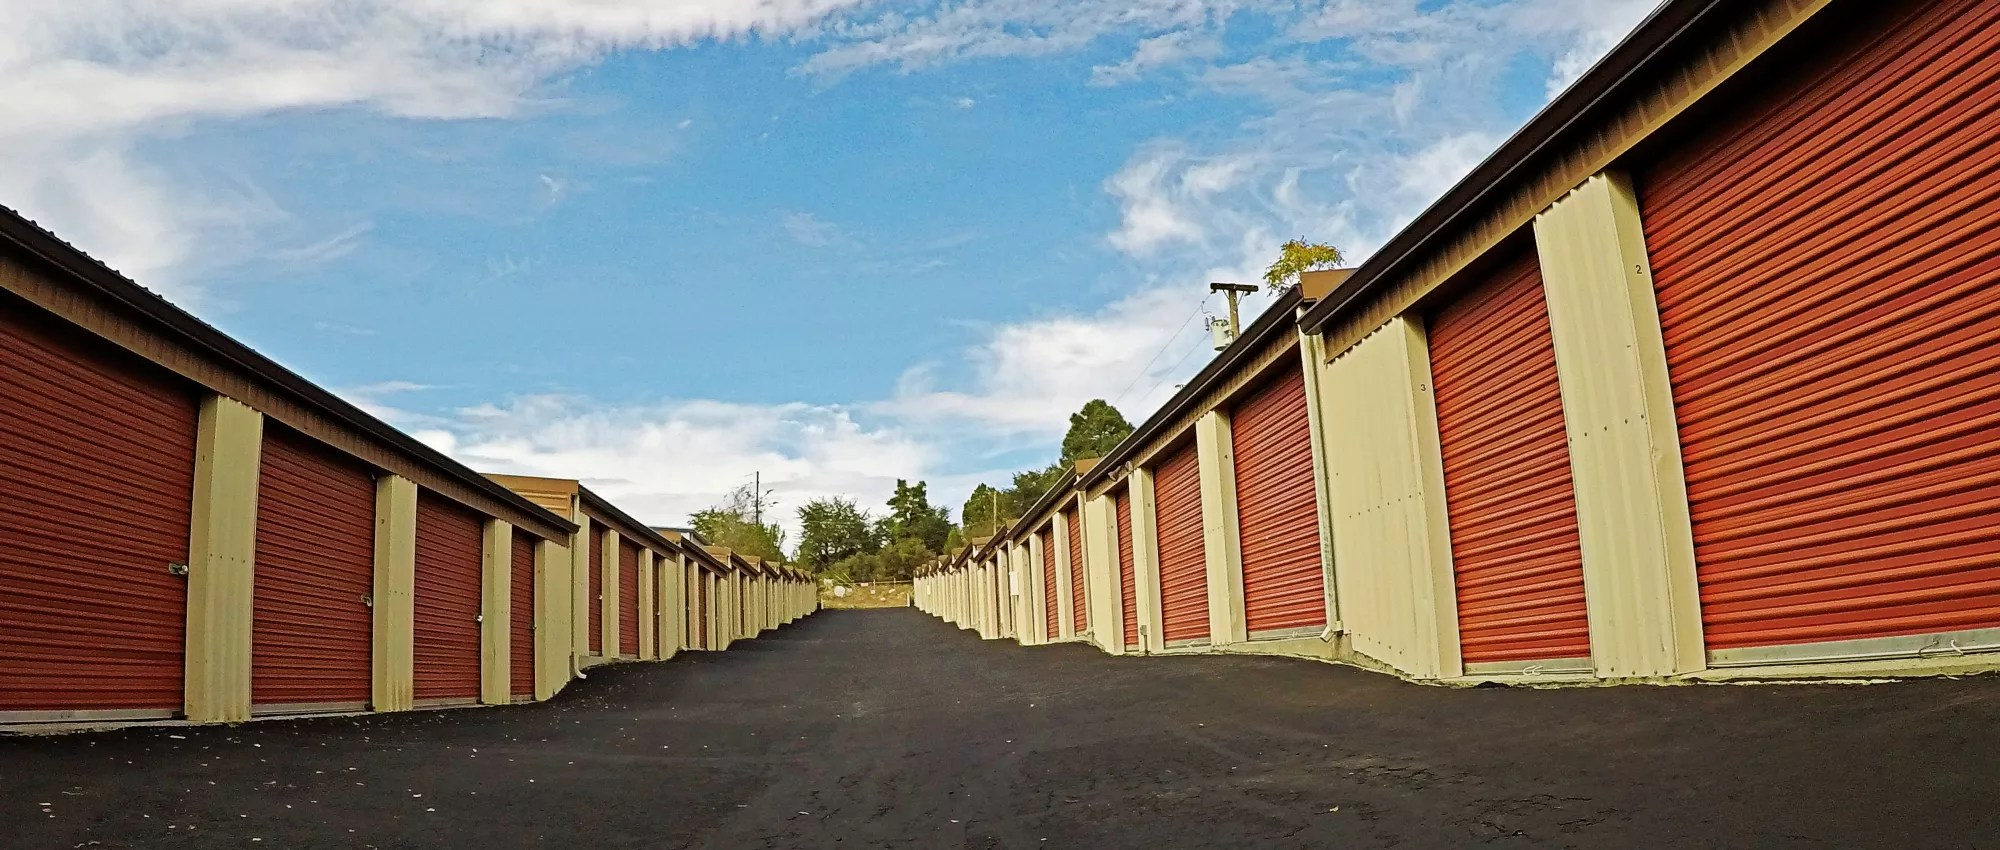 Storage Unit Cost Self Storage Prescott Az Storage Unit Sizes And Prices